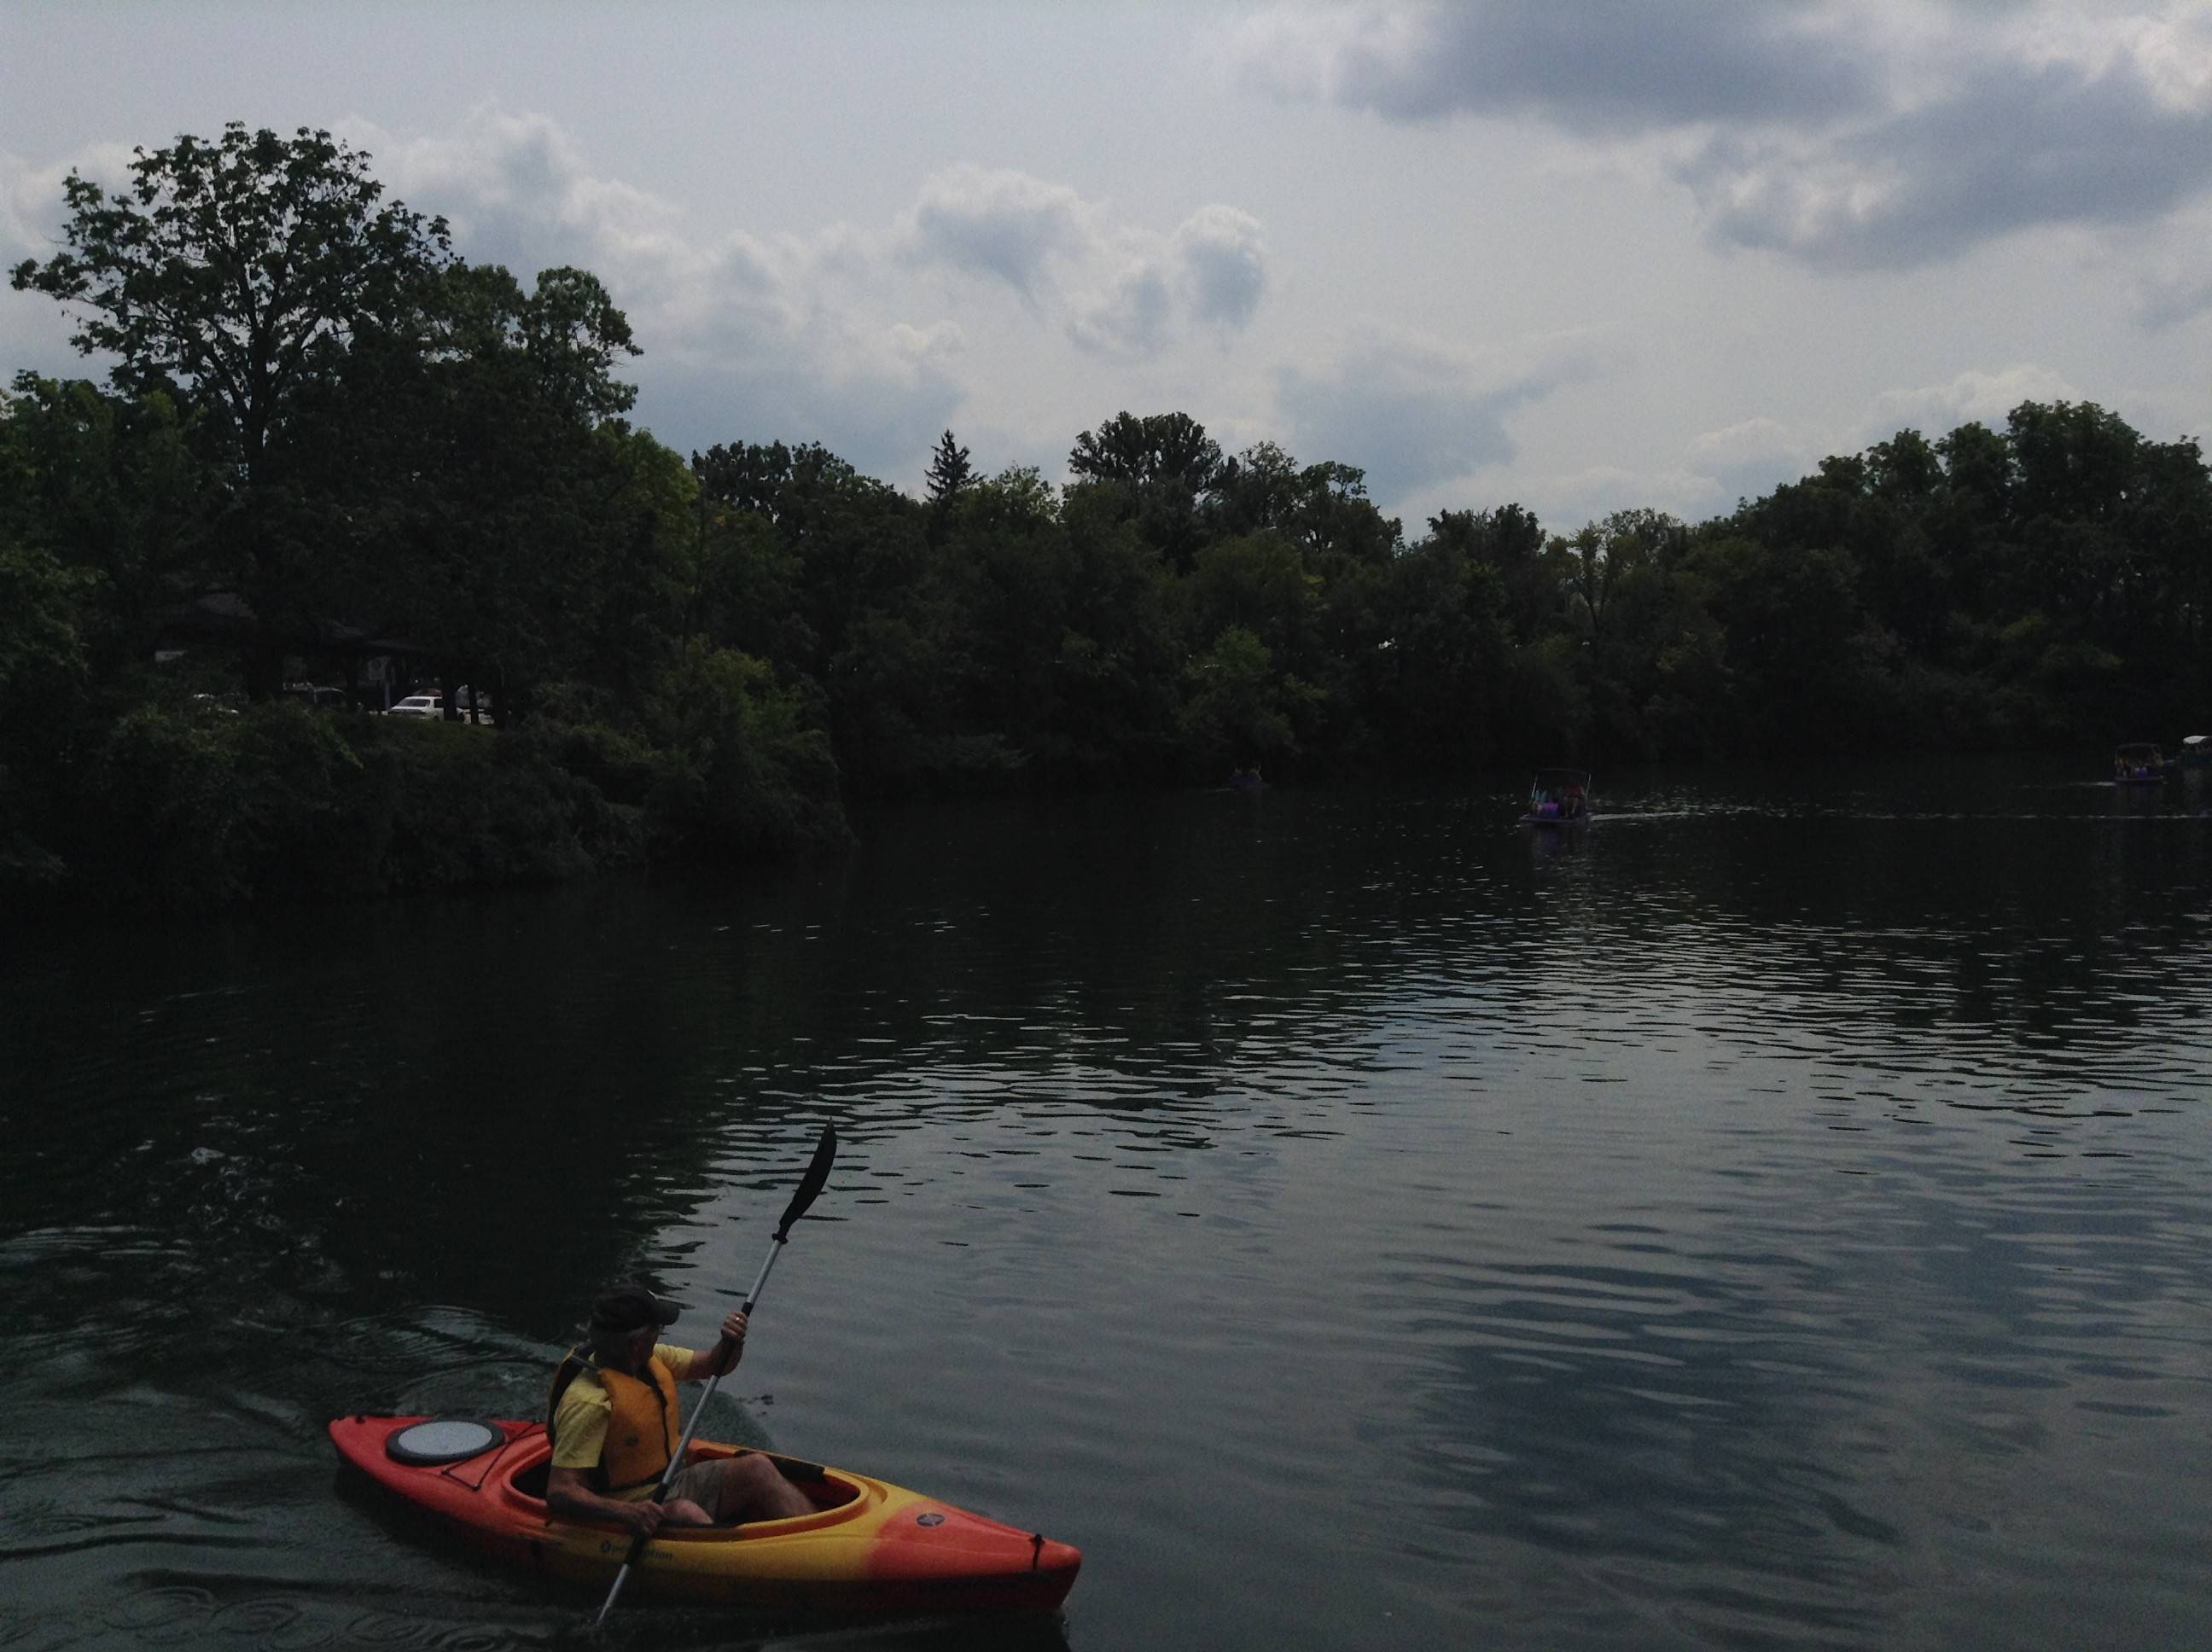 Paddleboat Quarry in Naperville was able to open for boating about 12 hours after driver Michael T. Szot, 21, of Geneva, plunged his vehicle into the water early Saturday morning, killing two passengers.